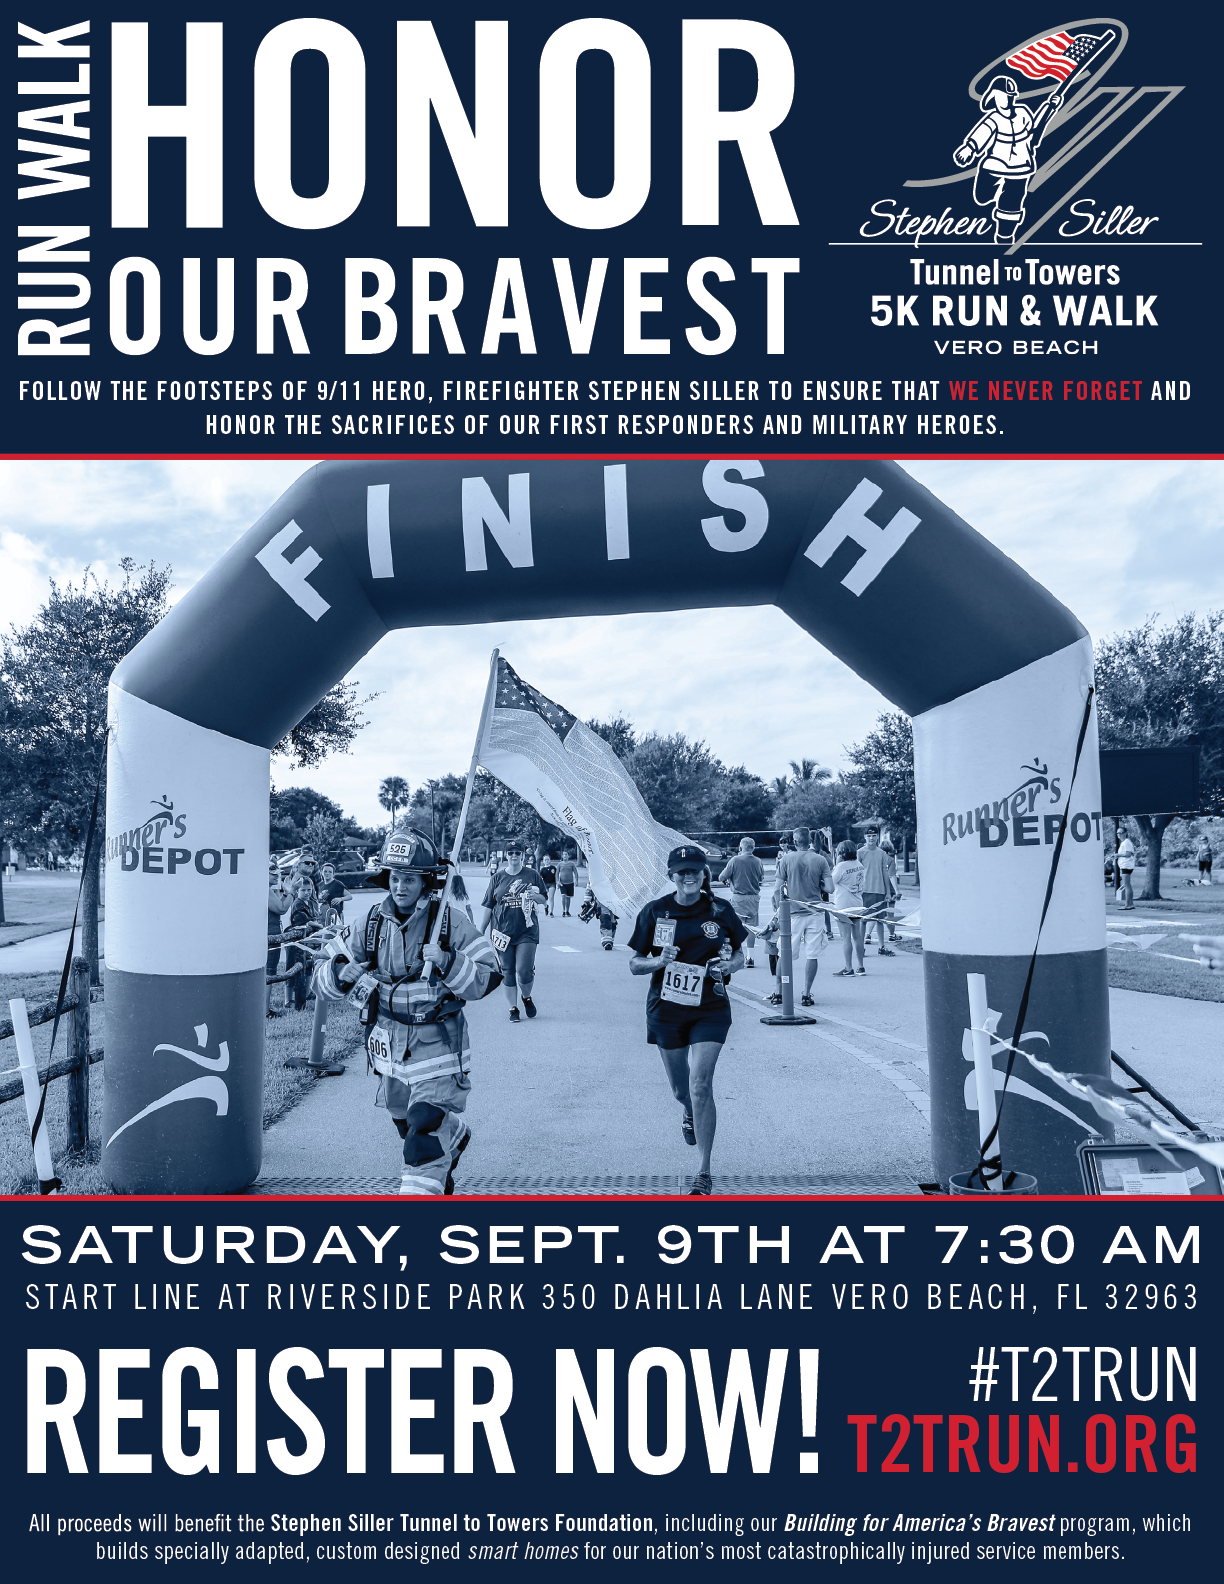 2017 Tunnel to Towers 5K Run & Walk Vero Beach - Stephen ...